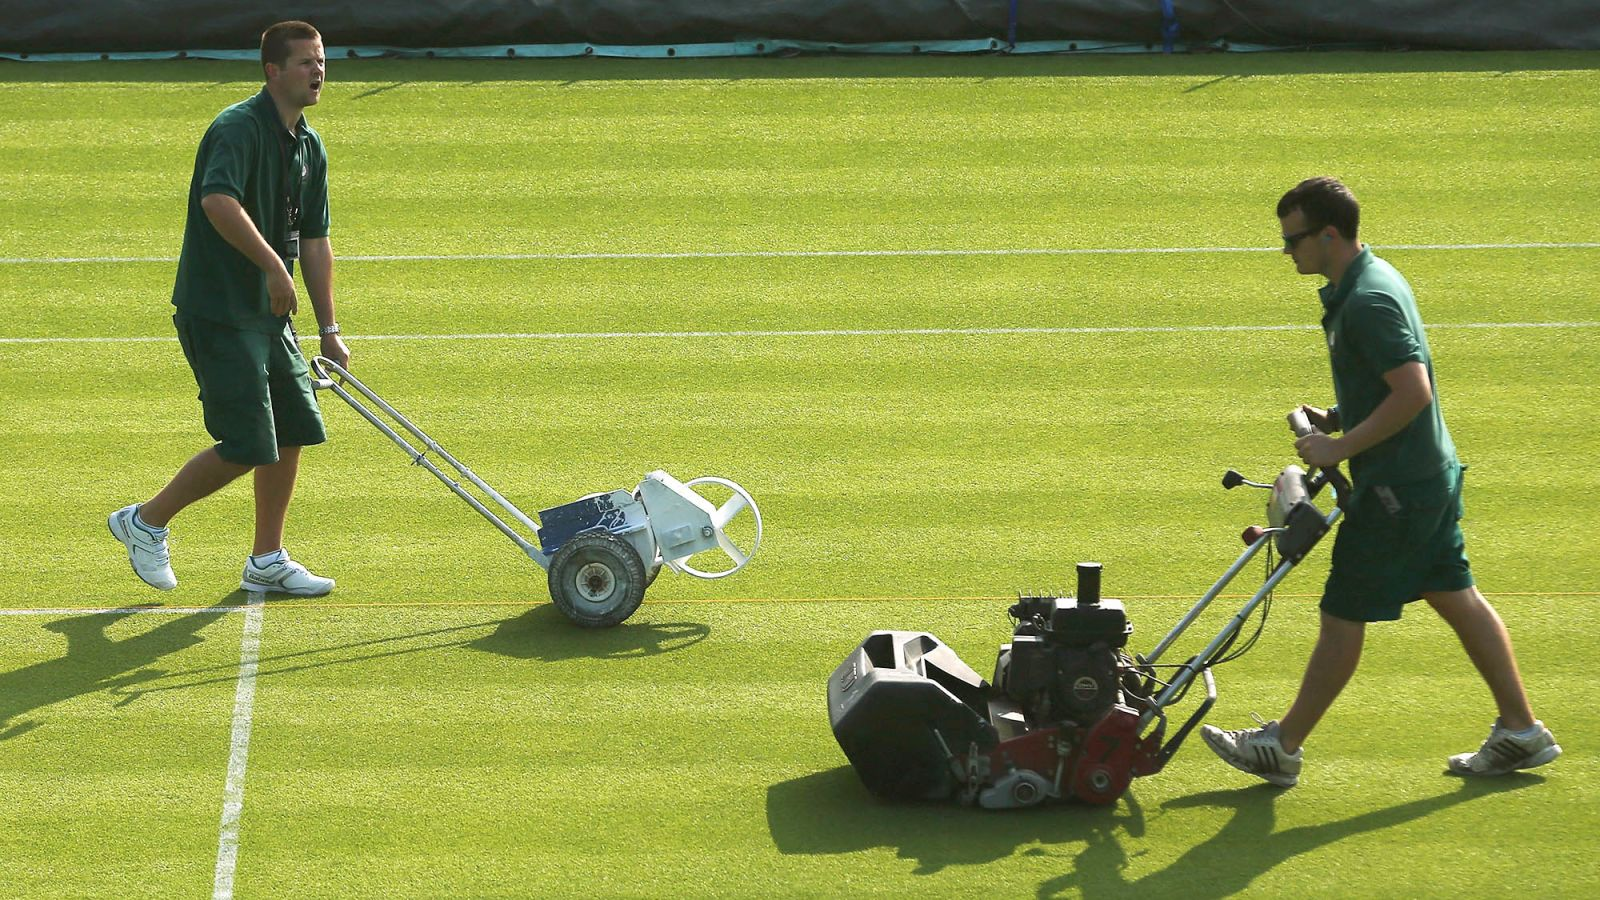 Wimbledon Grounds Crew Frustrated After Learning About Cement Courts https://t.co/QbicCM7cf2 https://t.co/JmlJnFeneF